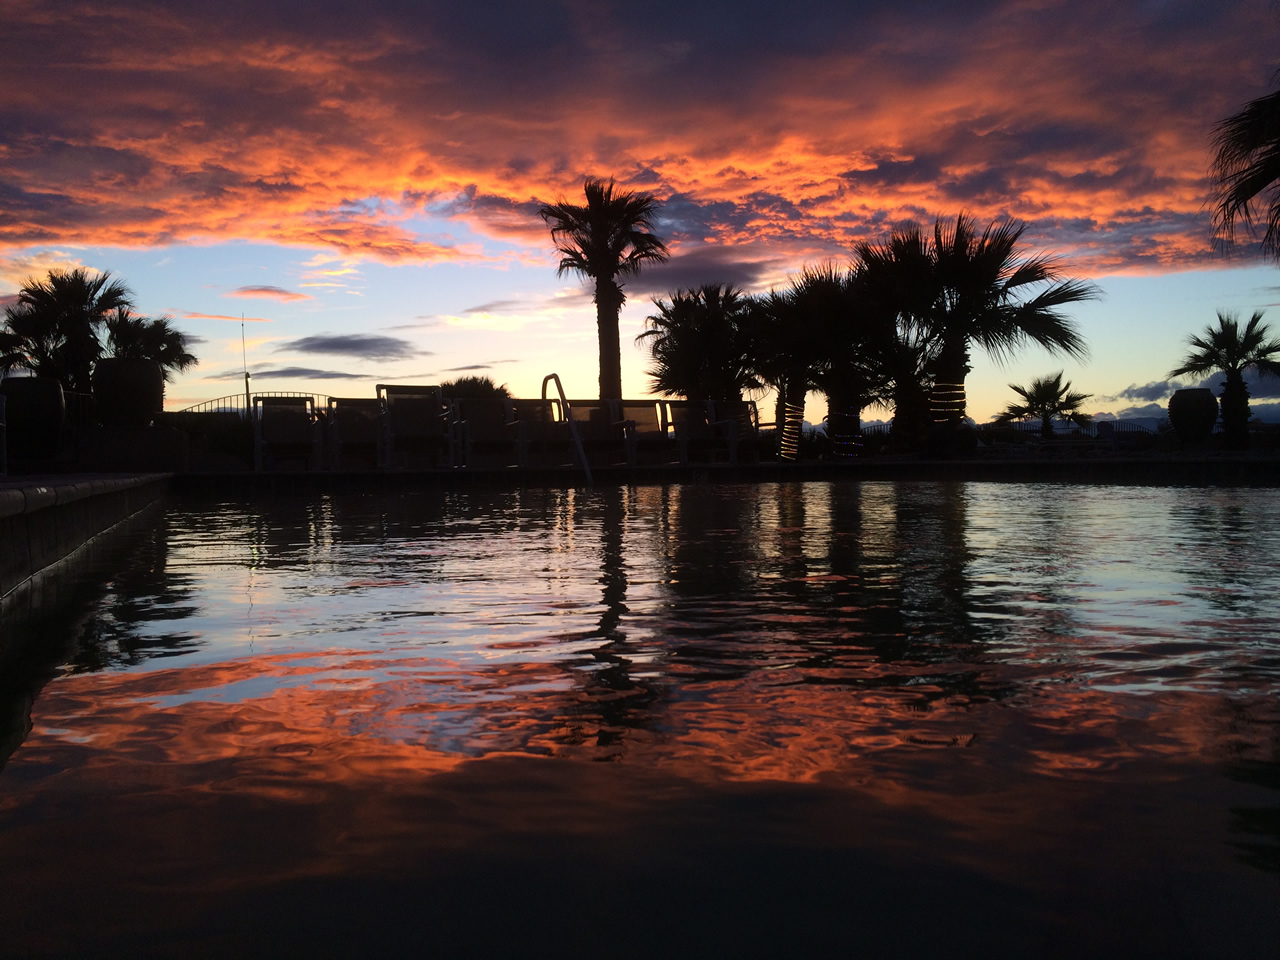 A picture of the sun setting over the Glamis North Hot Springs Resort pool complex